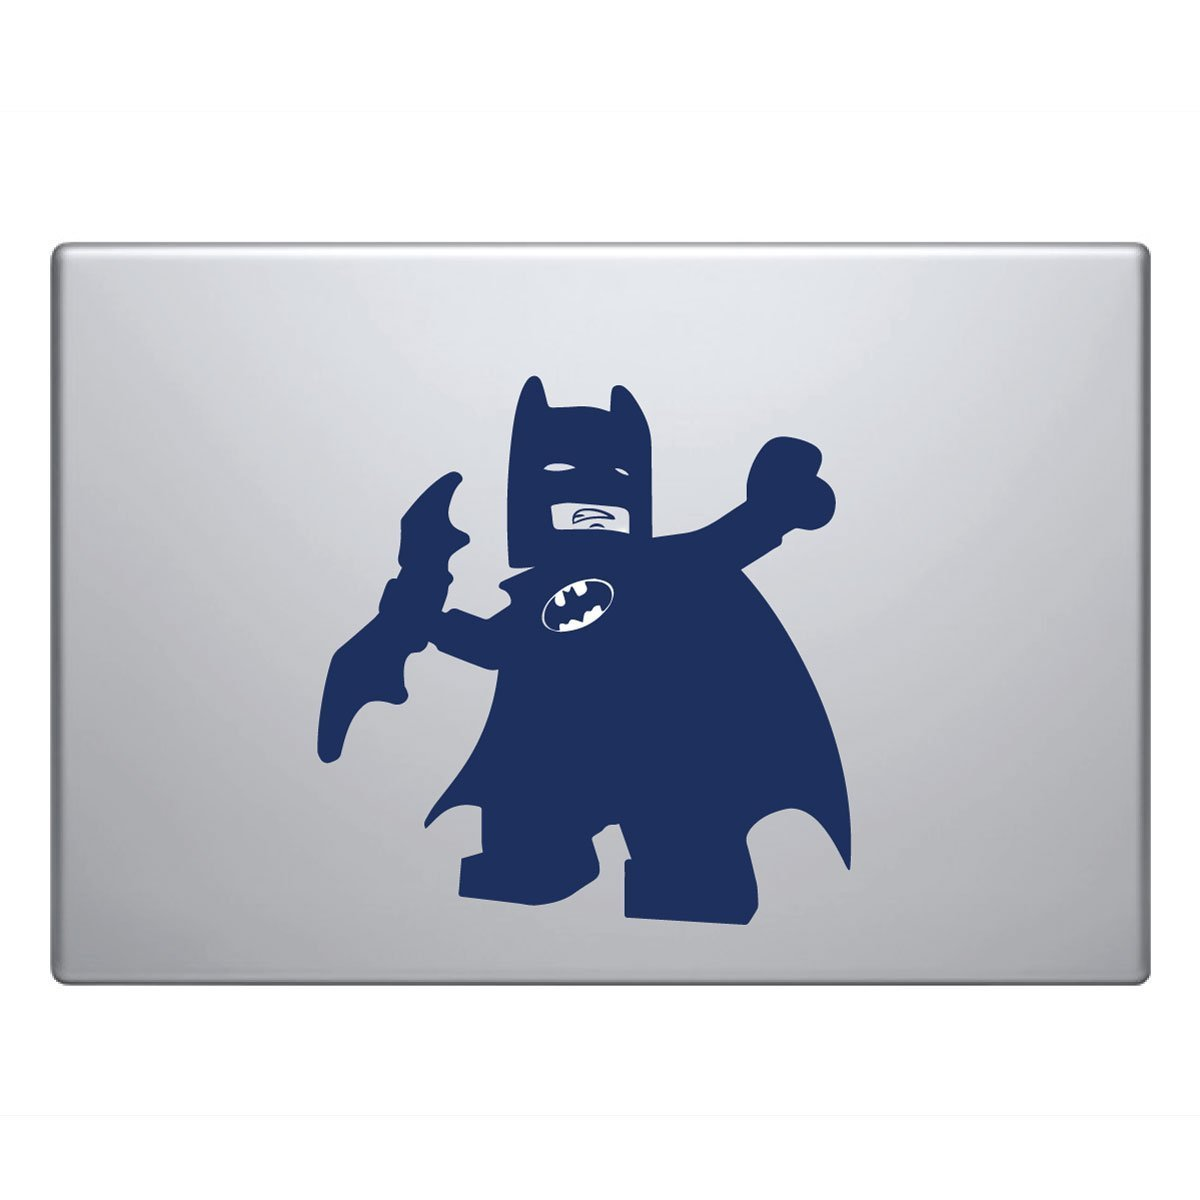 Batman Macbook Decal - Lego DC Comics Superheroes